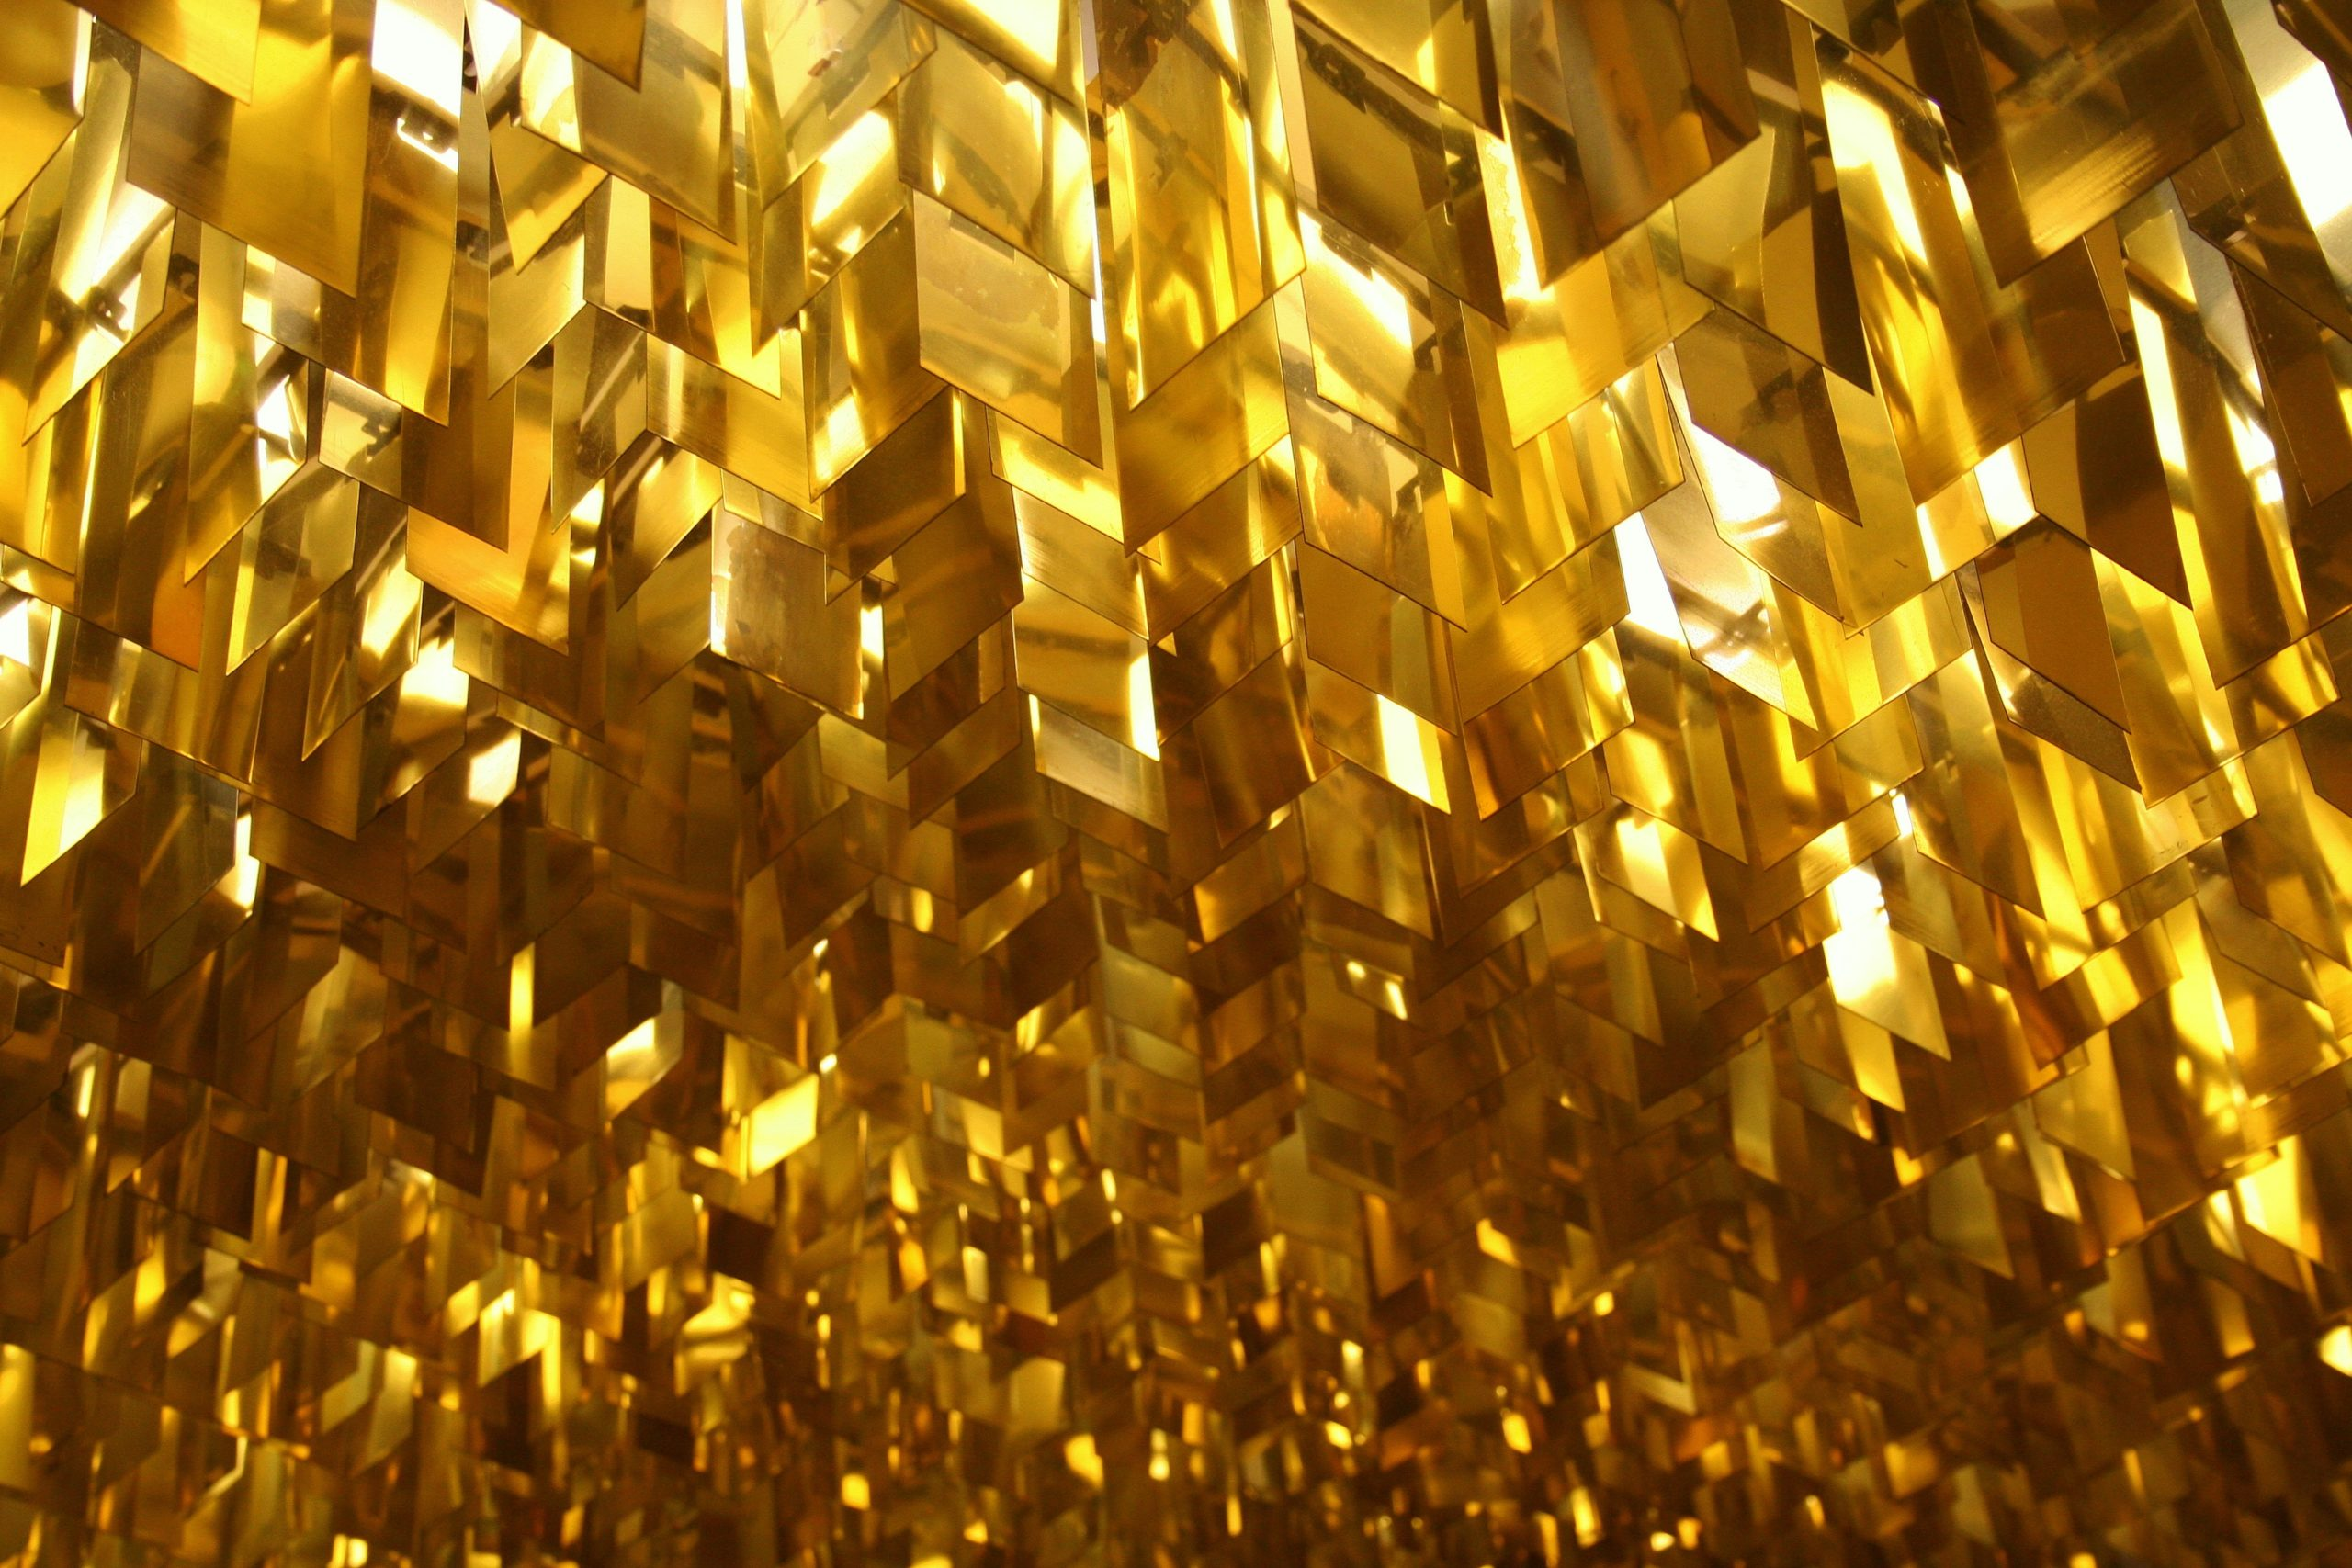 Gold foil hanging from the ceiling